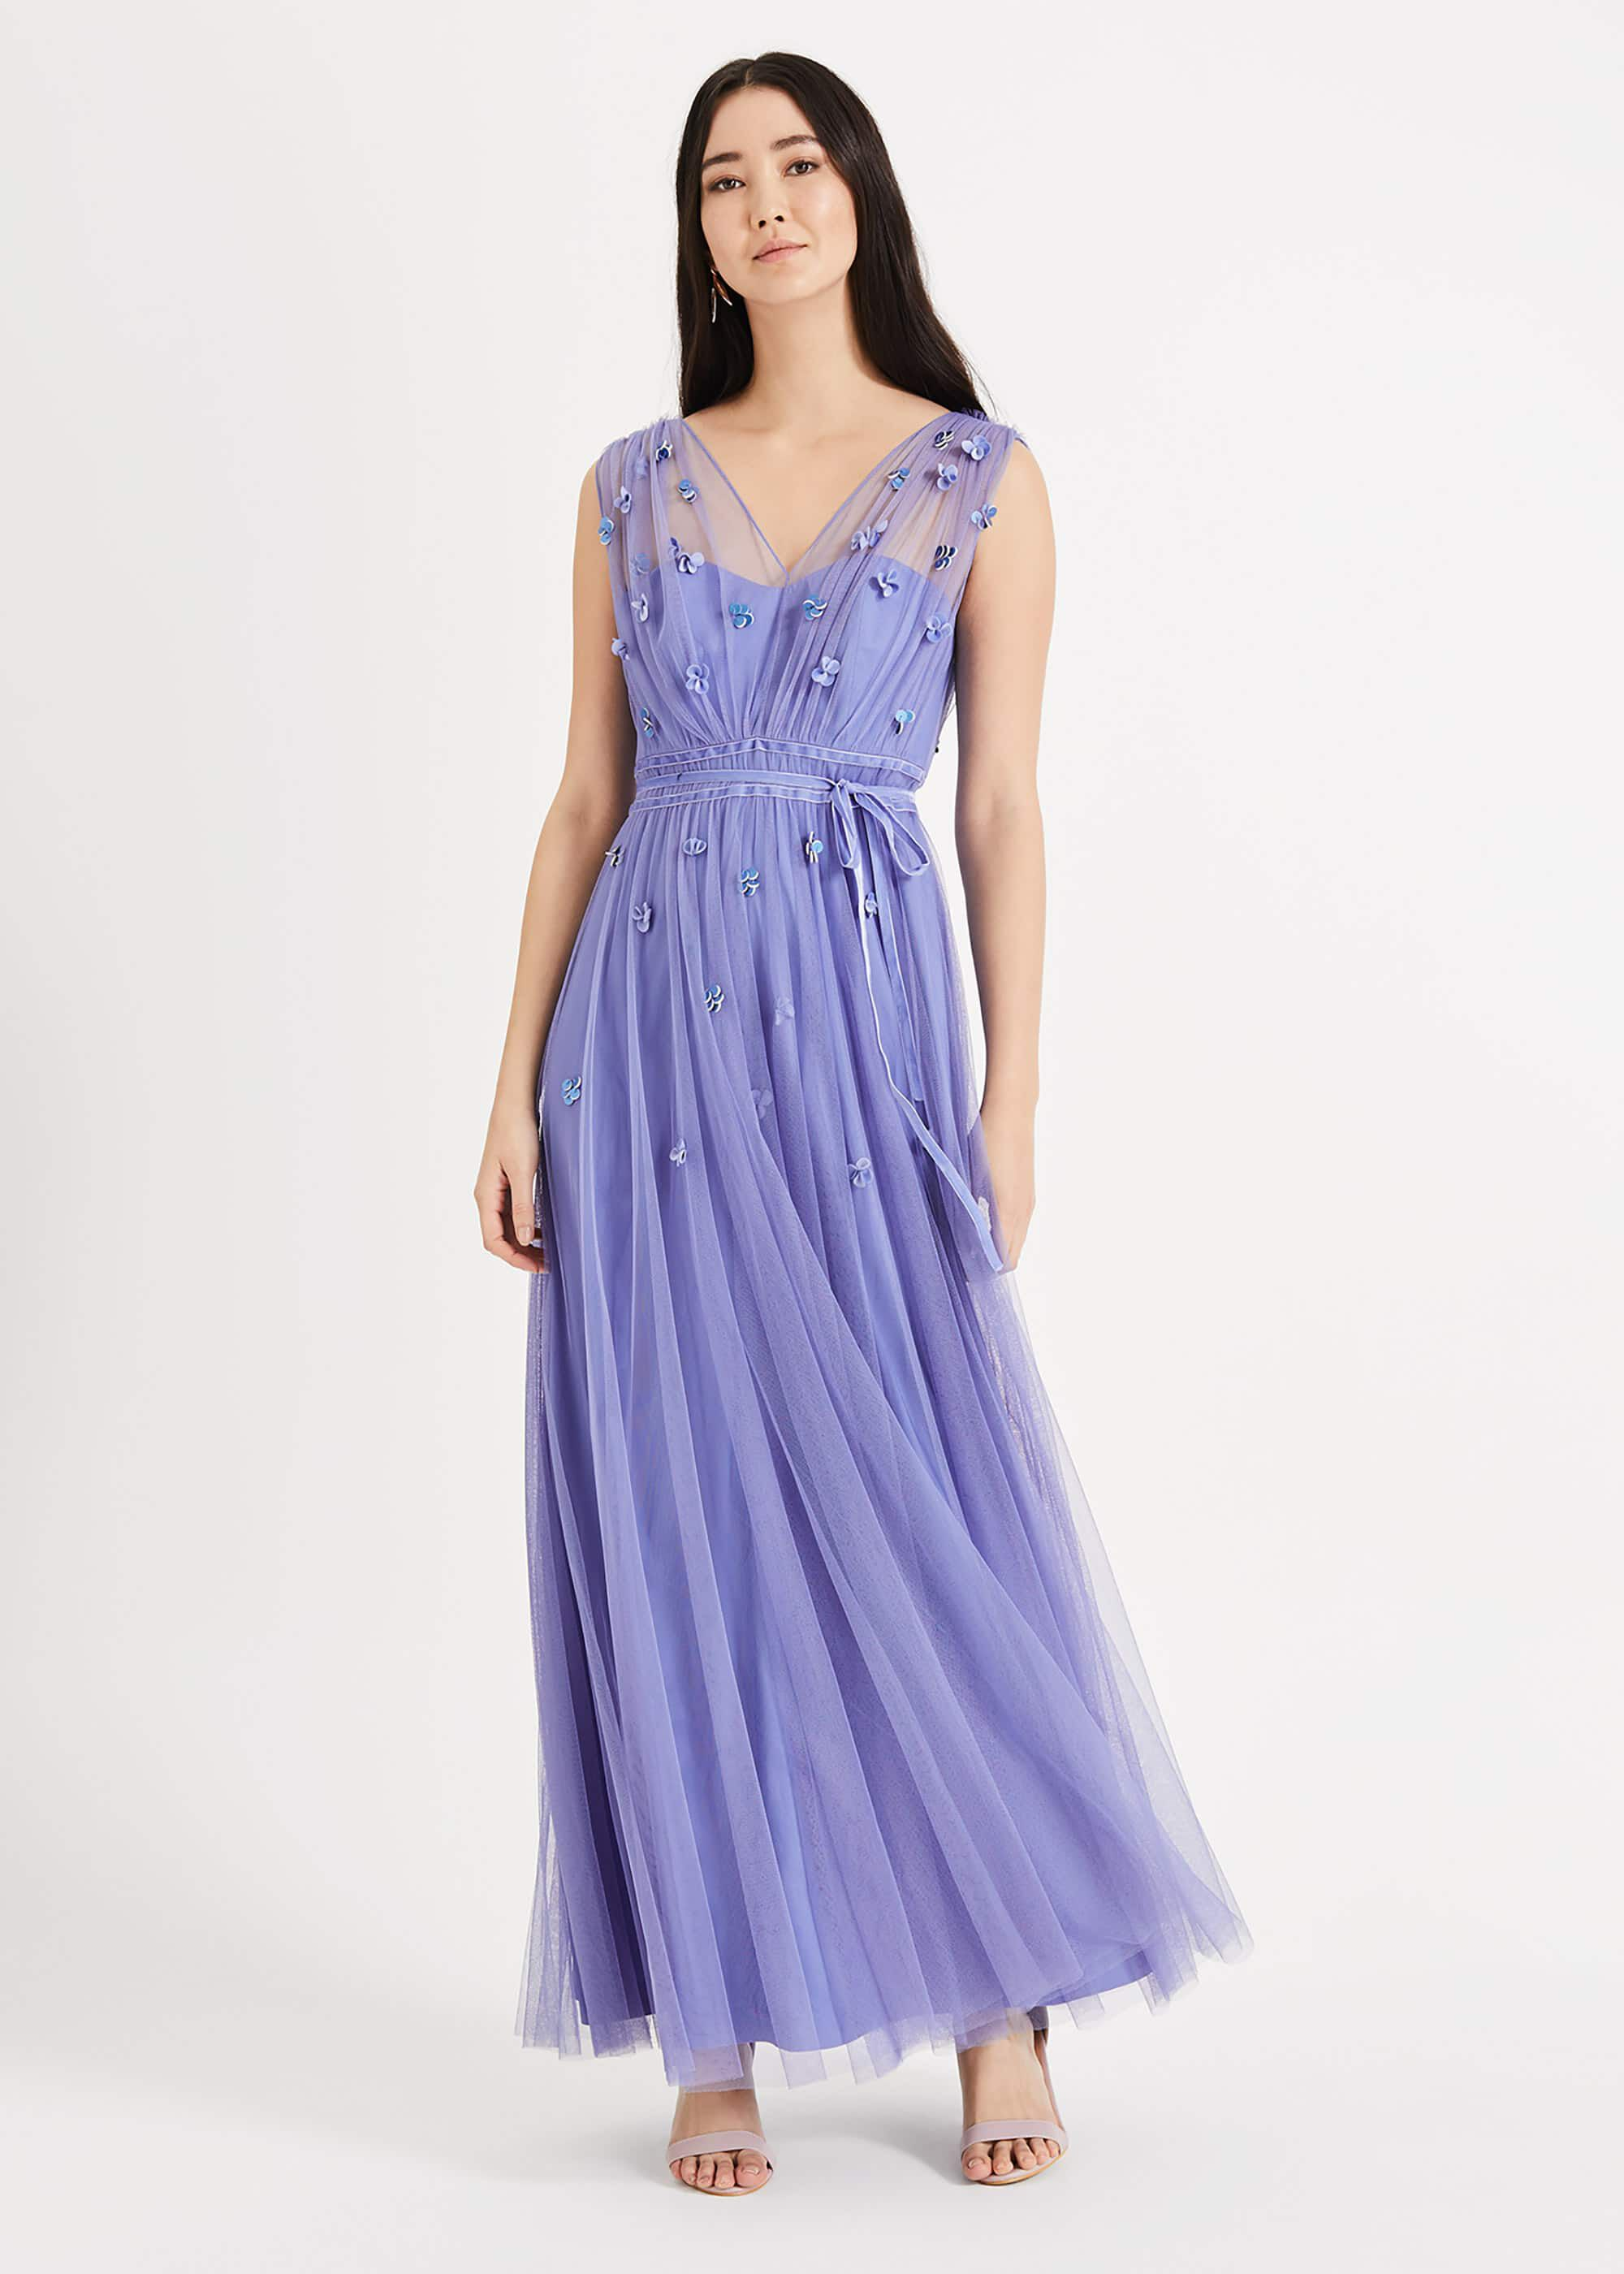 Phase Eight Yazmina Tulle Maxi Dress, Blue, Maxi, Occasion Dress